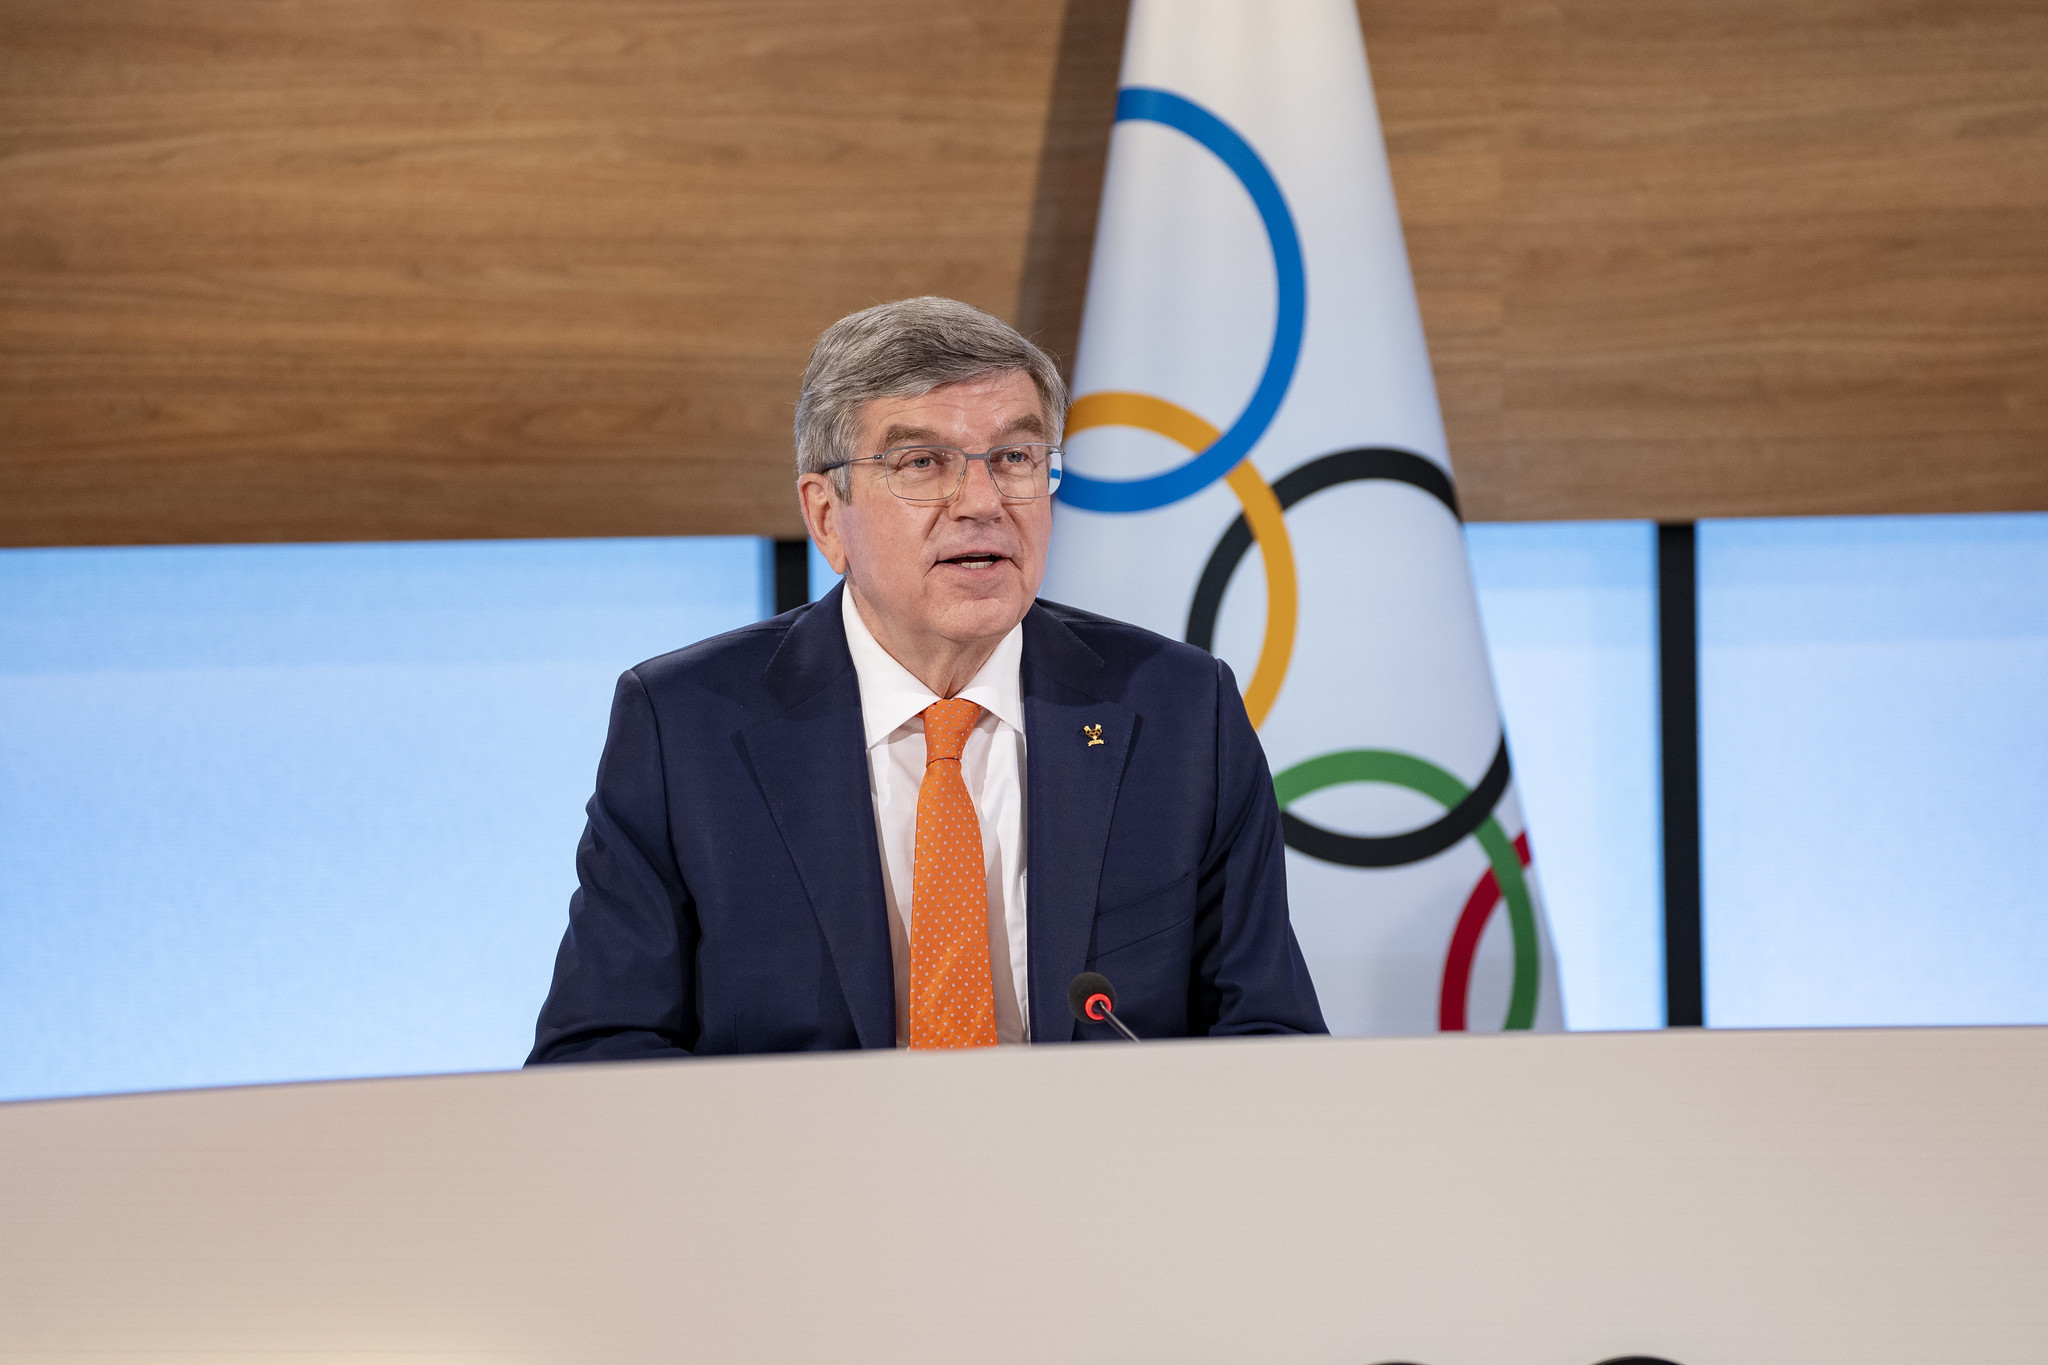 IOC President Thomas Bach thanked the members for rubber-stamping his new strategic plan ©IOC